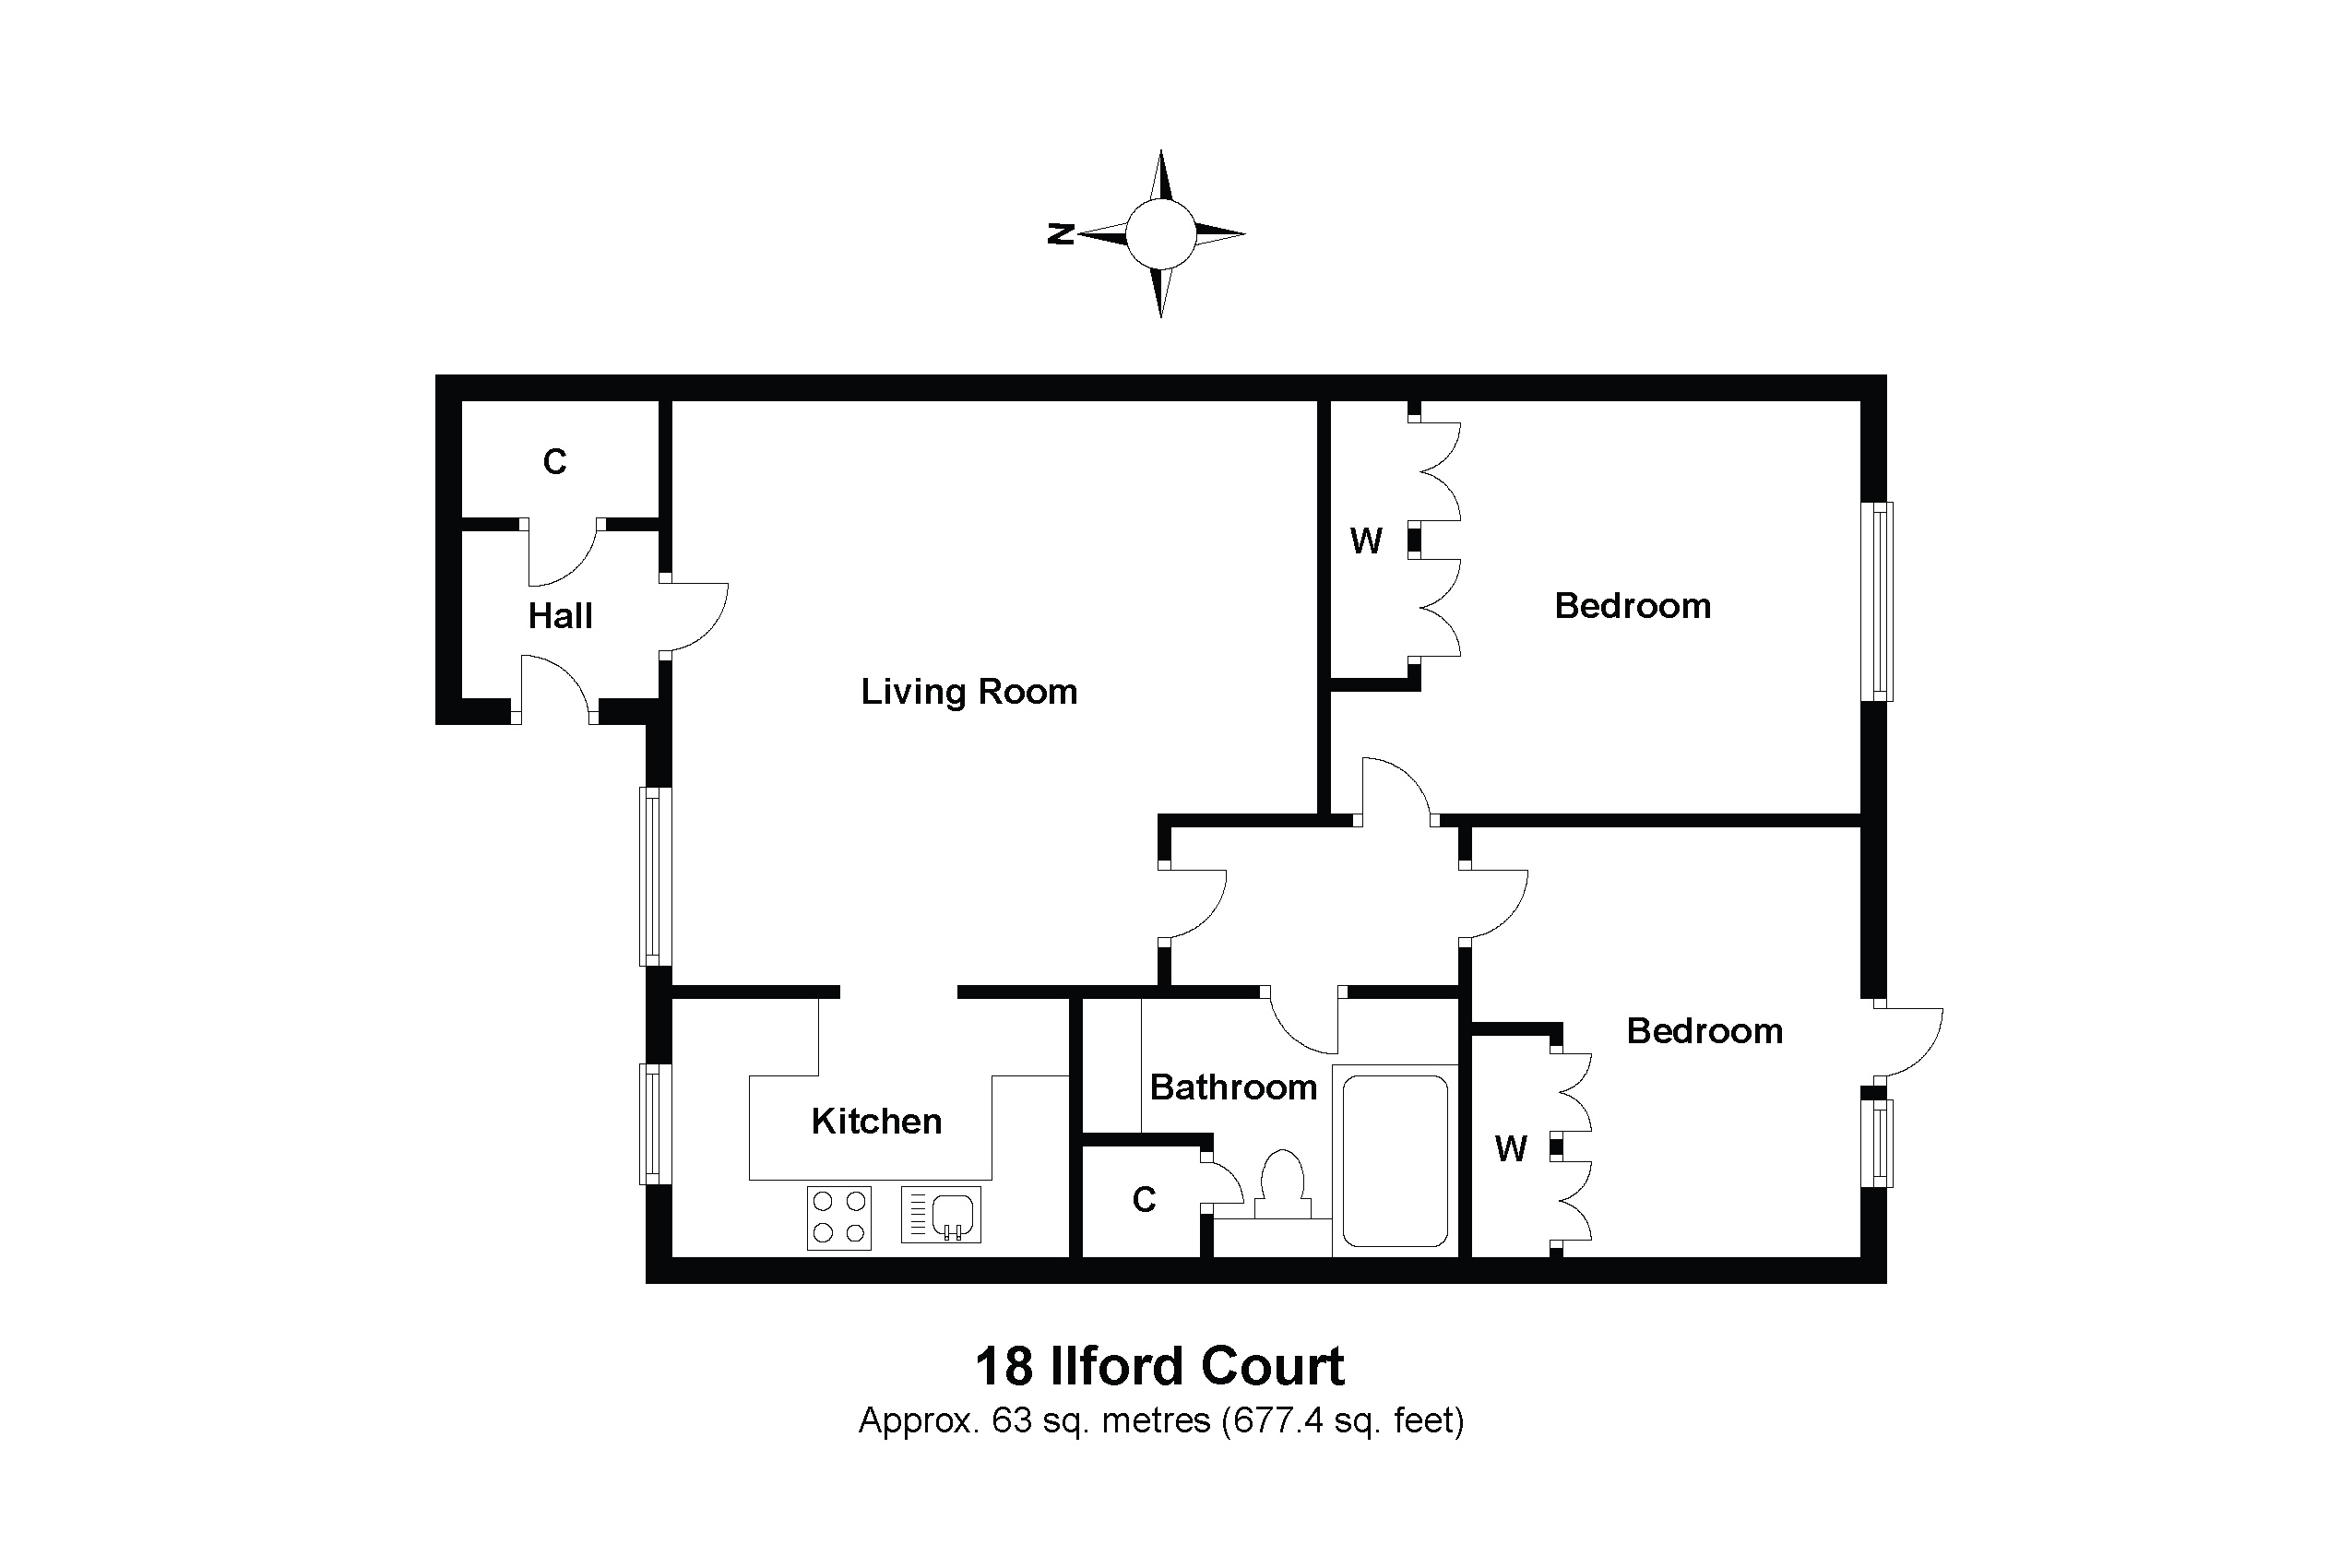 18 Ilford Court Floorplan